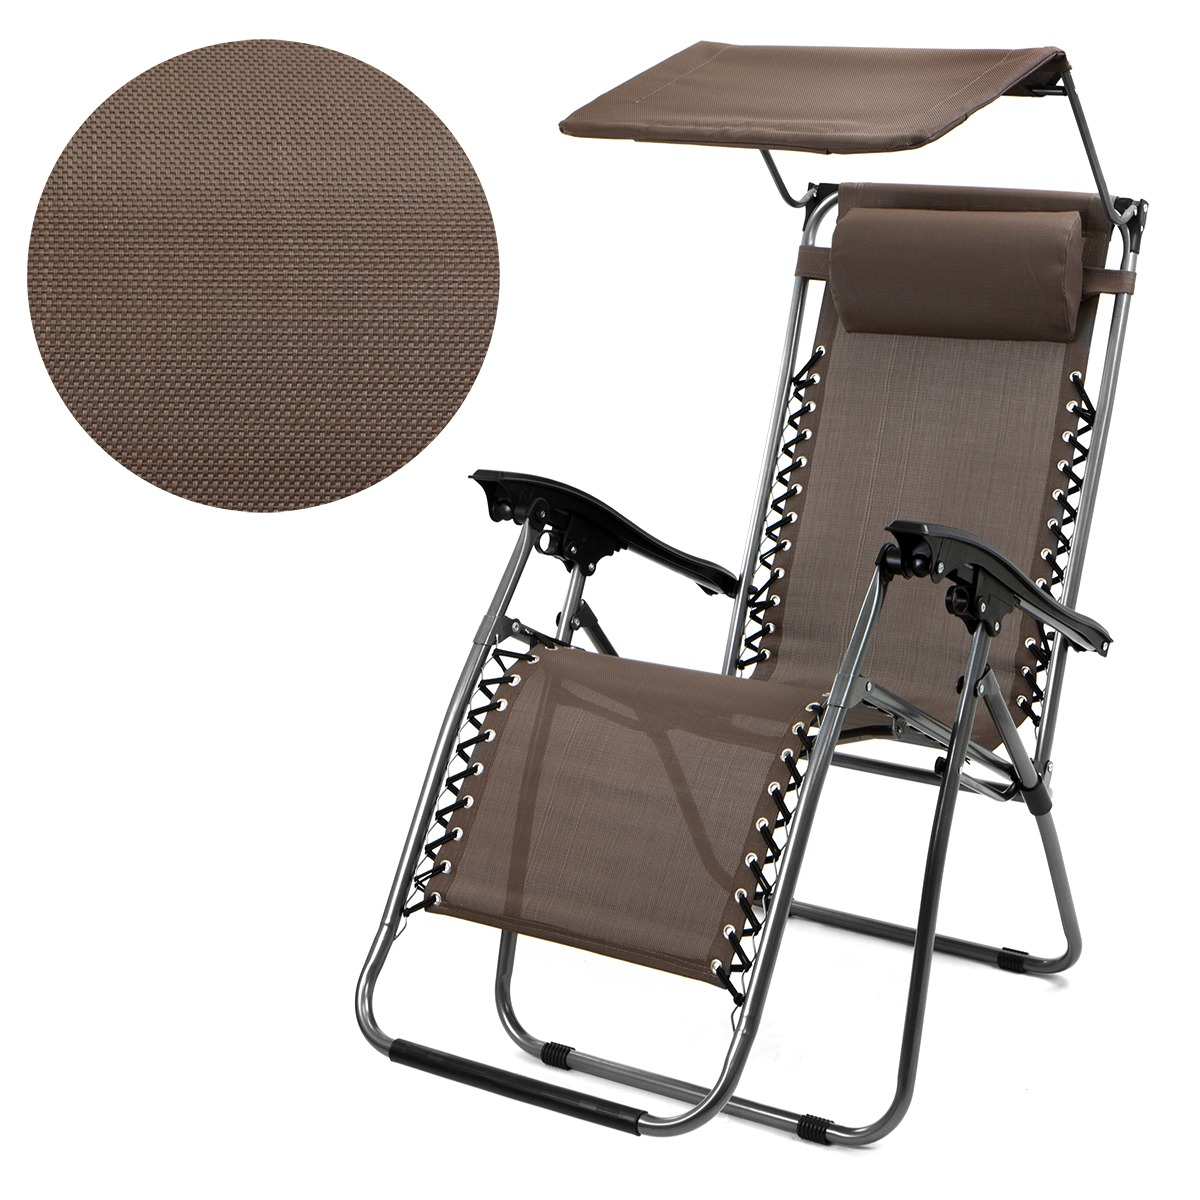 Patio Zero Gravity Chair Folding Lounge with Canopy Shade & Cup Holder Outdoor Yard Beach - Brown